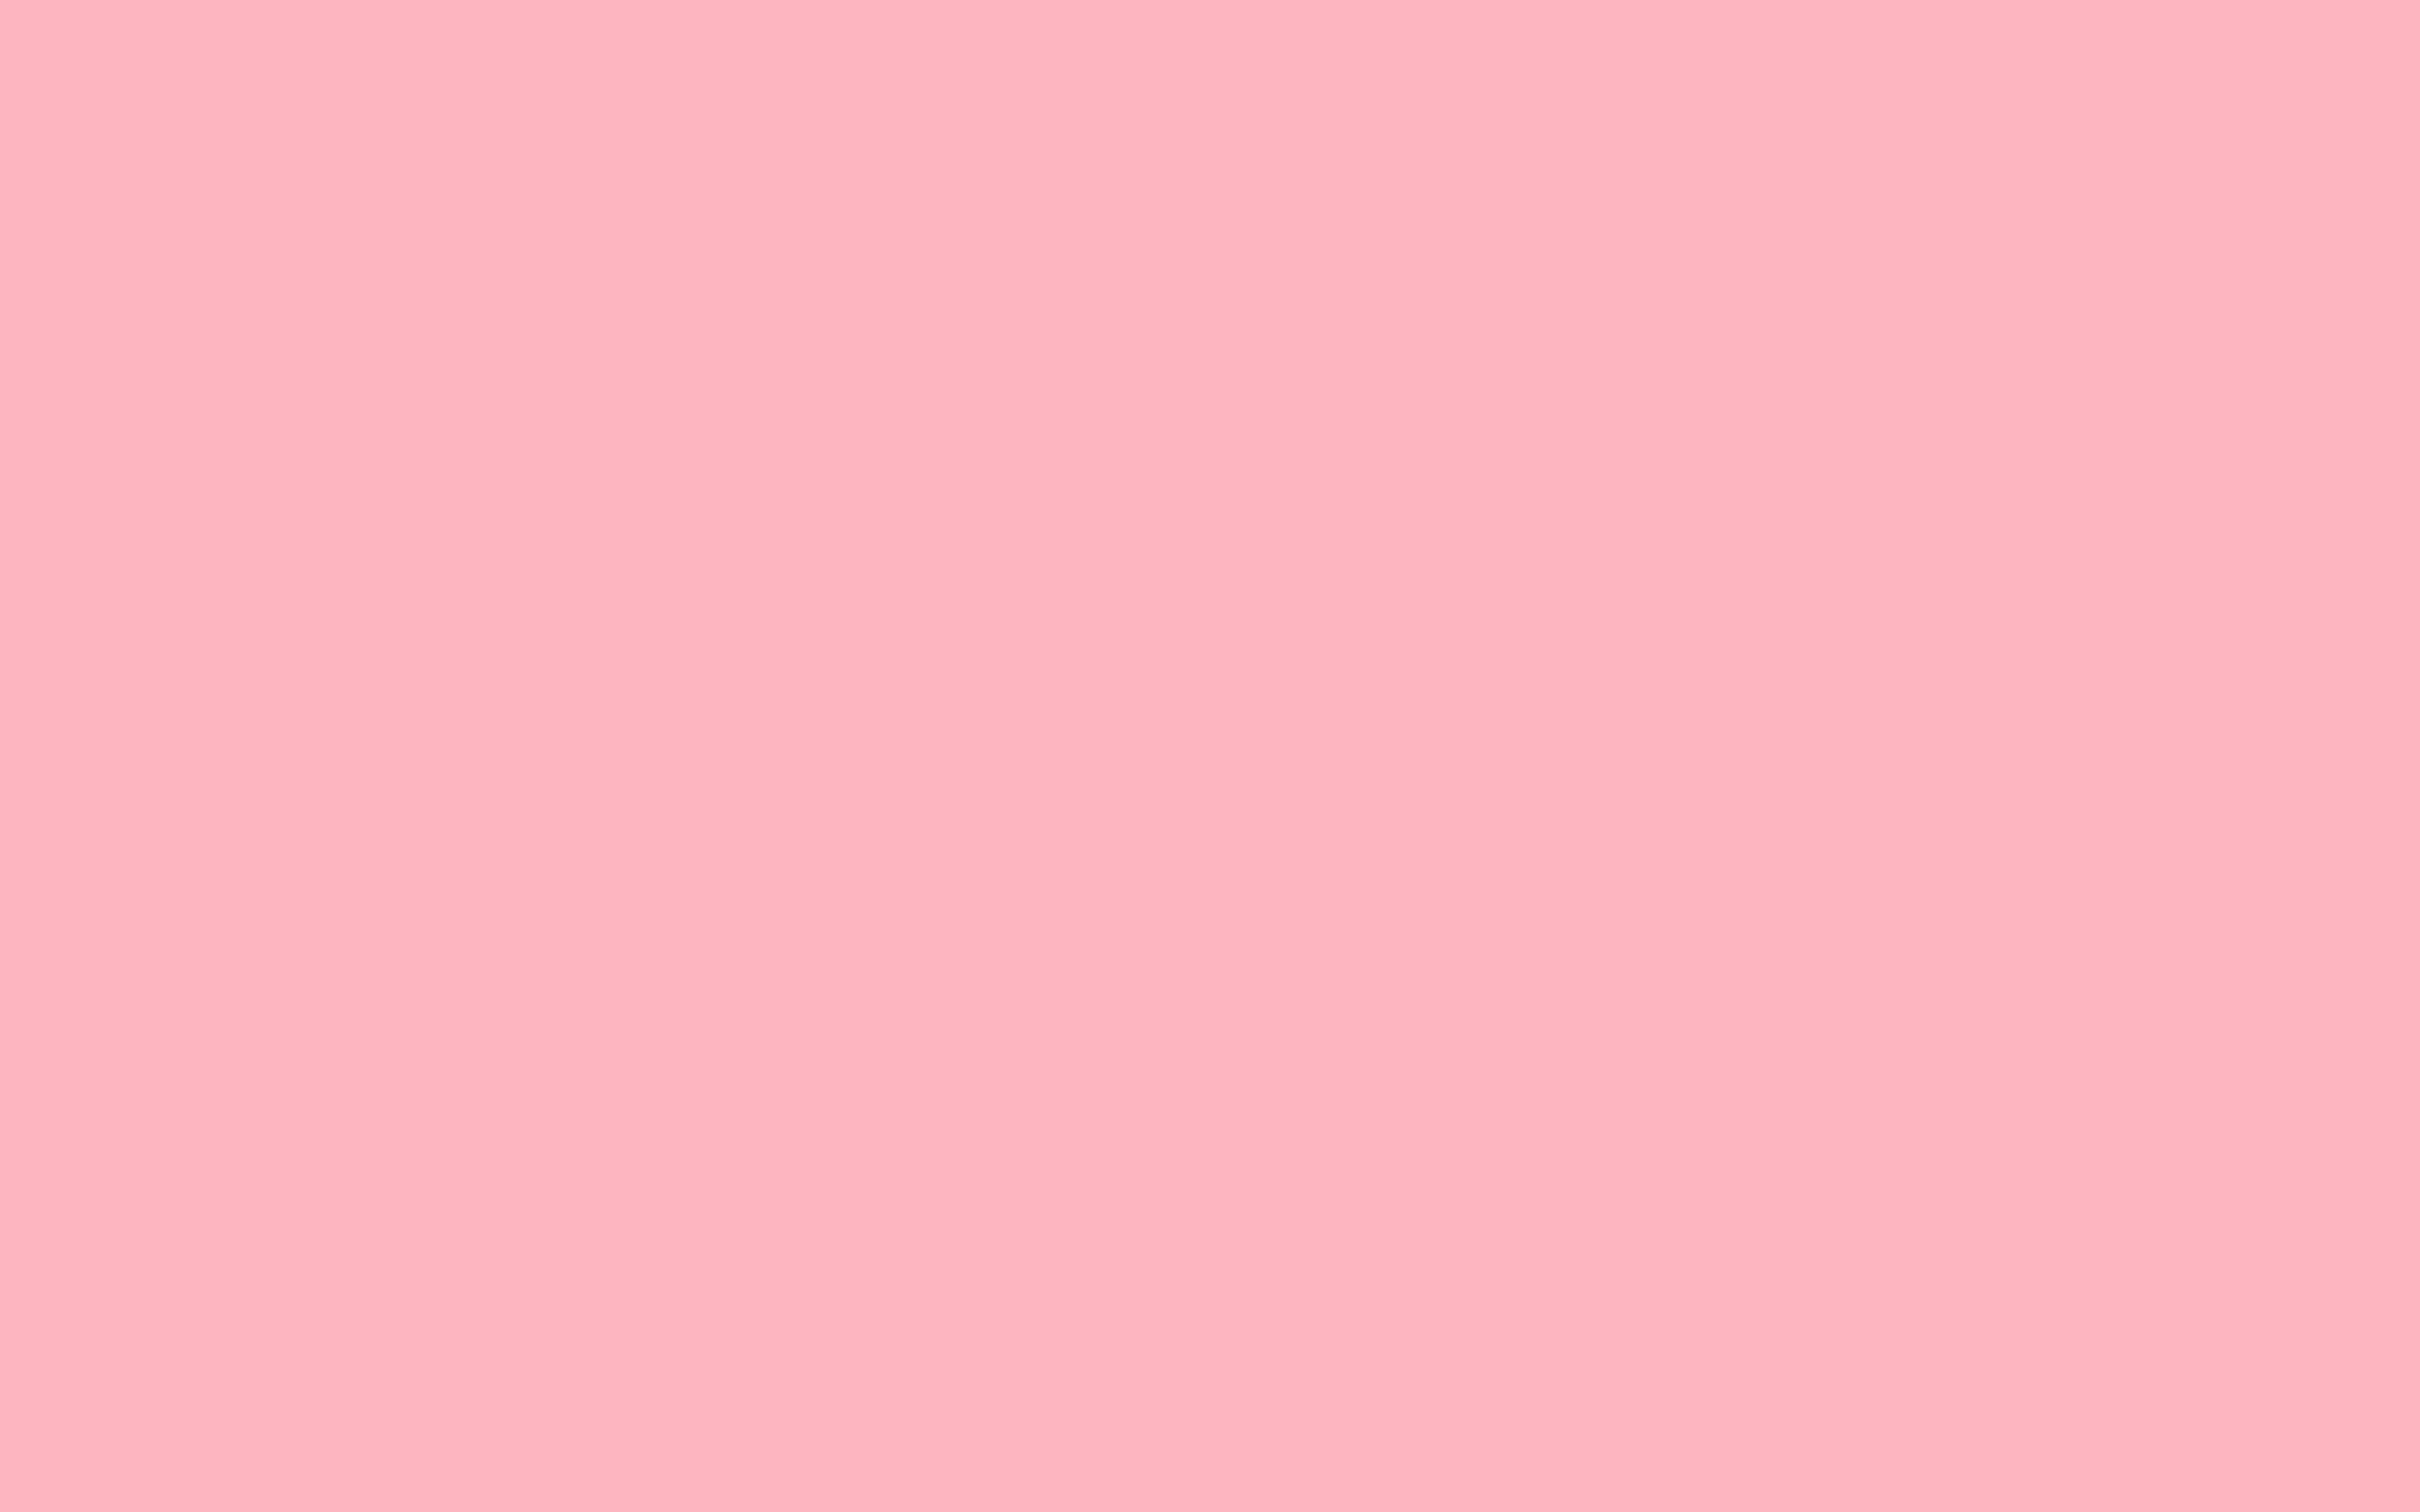 2880x1800 resolution Light Pink solid color background view and 2880x1800